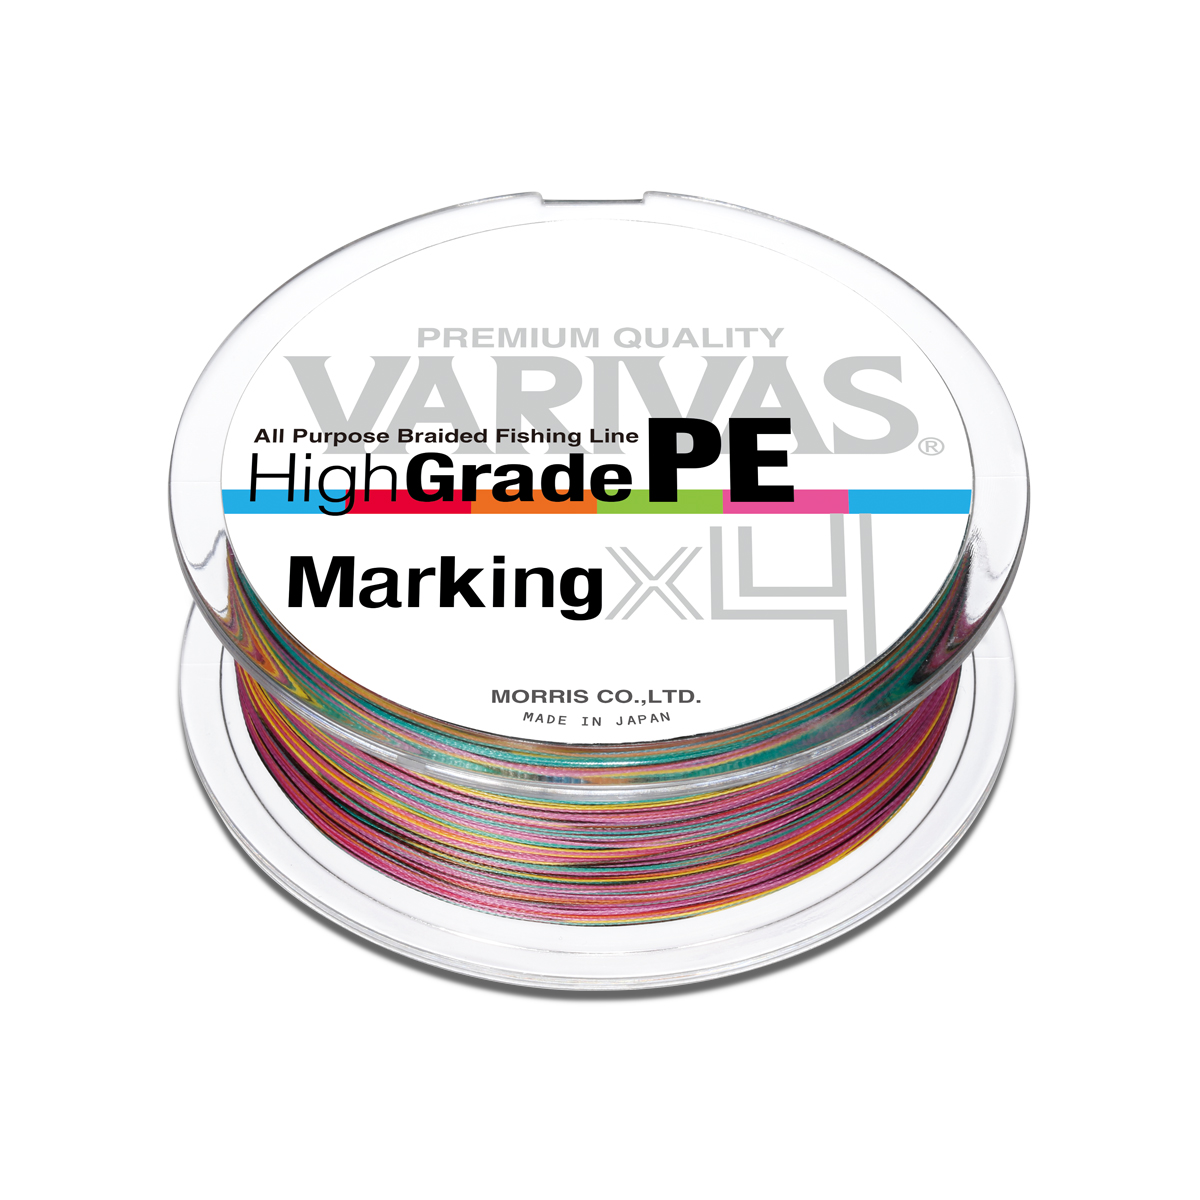 High Grade PEMarking X4